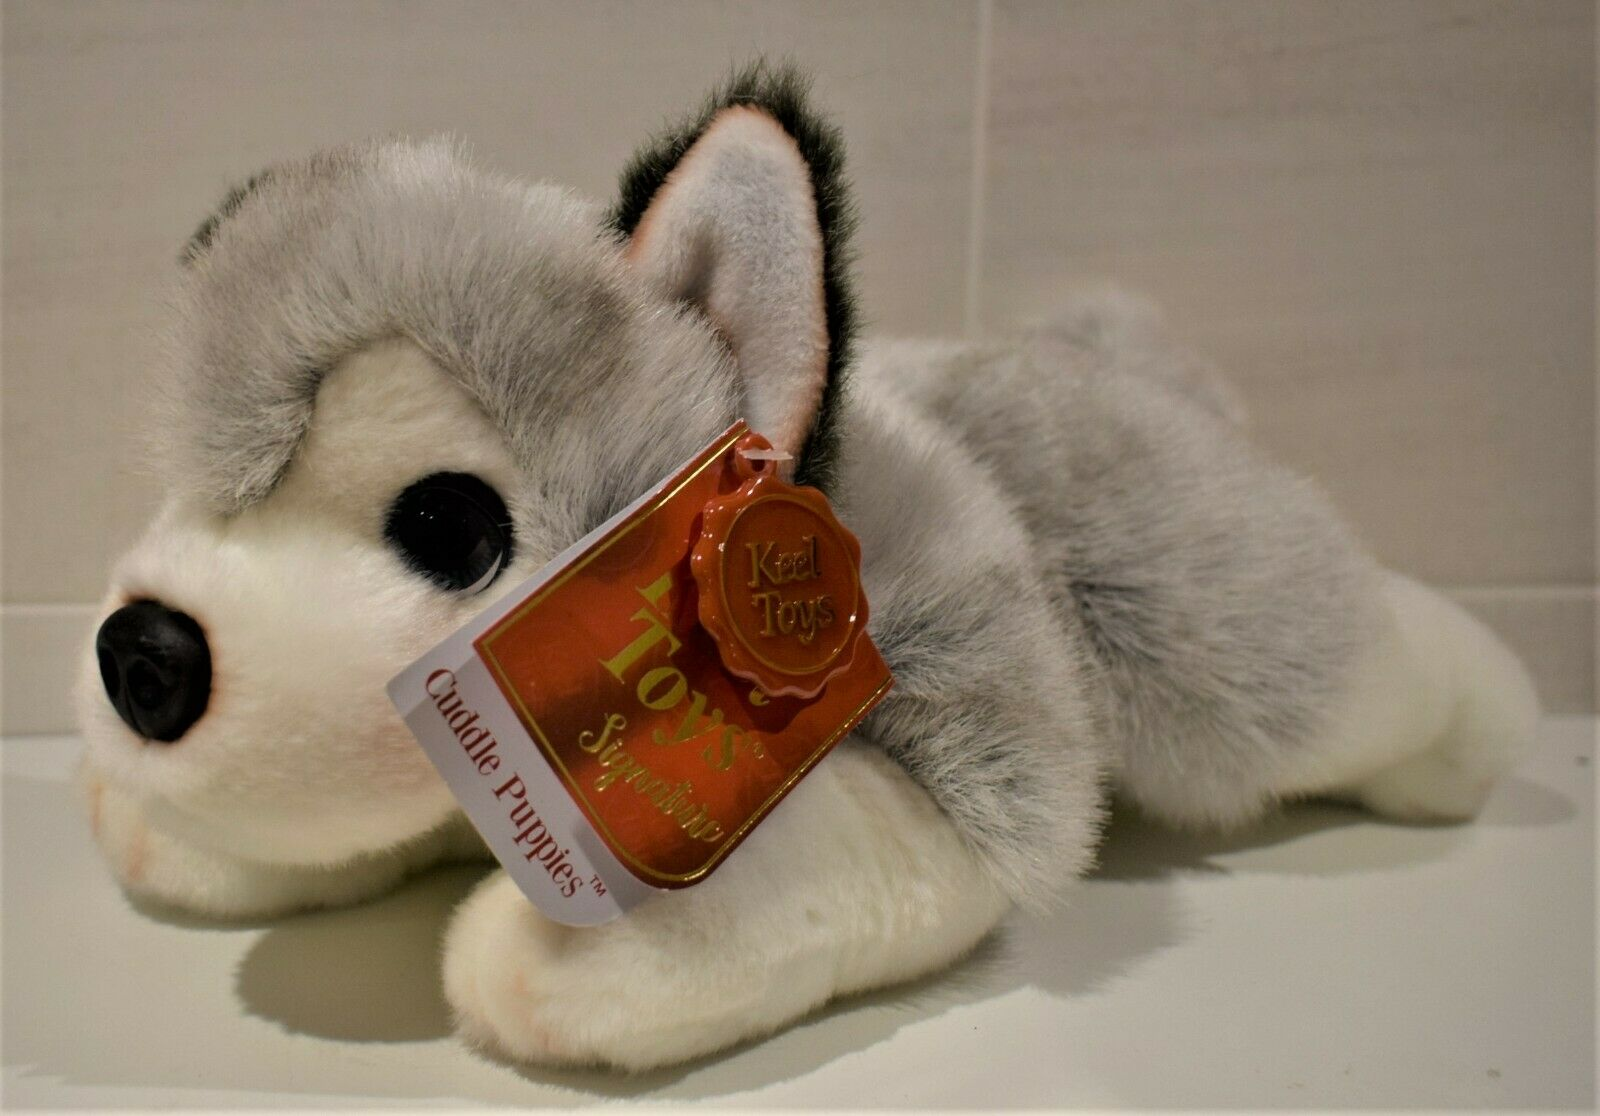 Keel Toys Soft Toy Husky Puppy Dog Plush Cute Collectible Pet 30 Cm For Sale Online Ebay